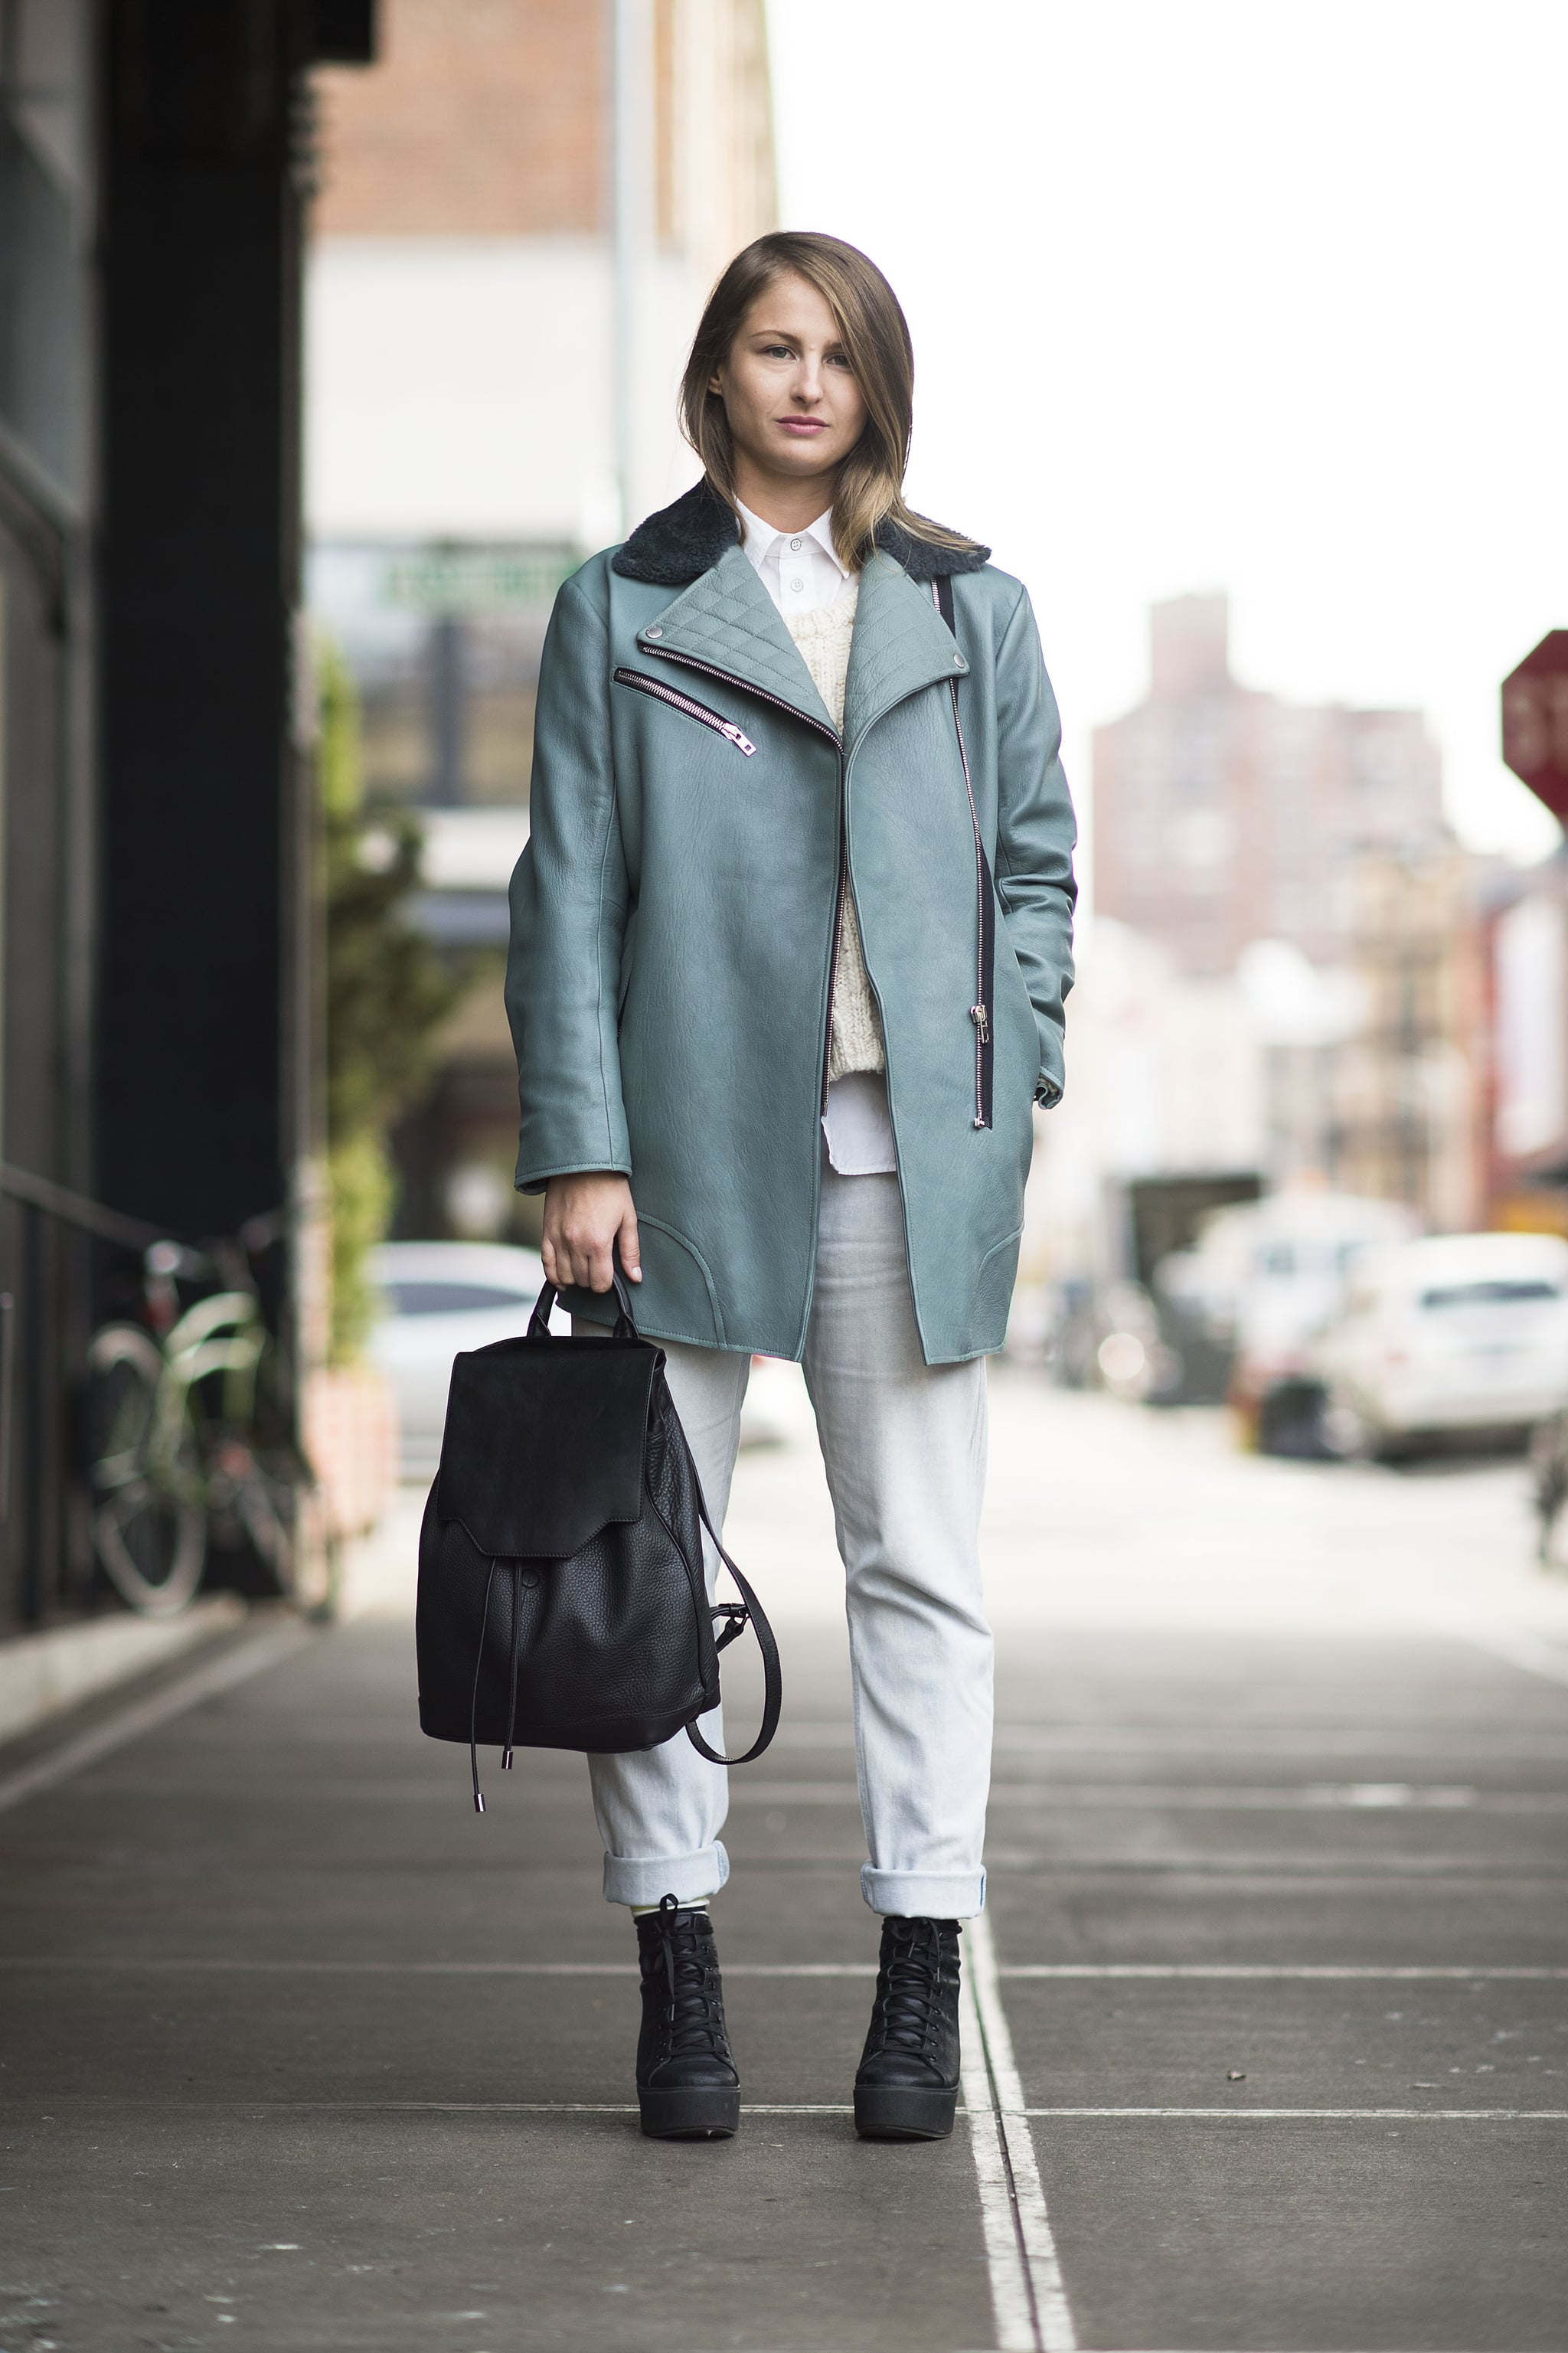 Winter doesn't have to mean gray days: this street style pro added interest with a blue-hued leather jacket and white jeans. Source: Le 21ème | Adam Katz Sinding